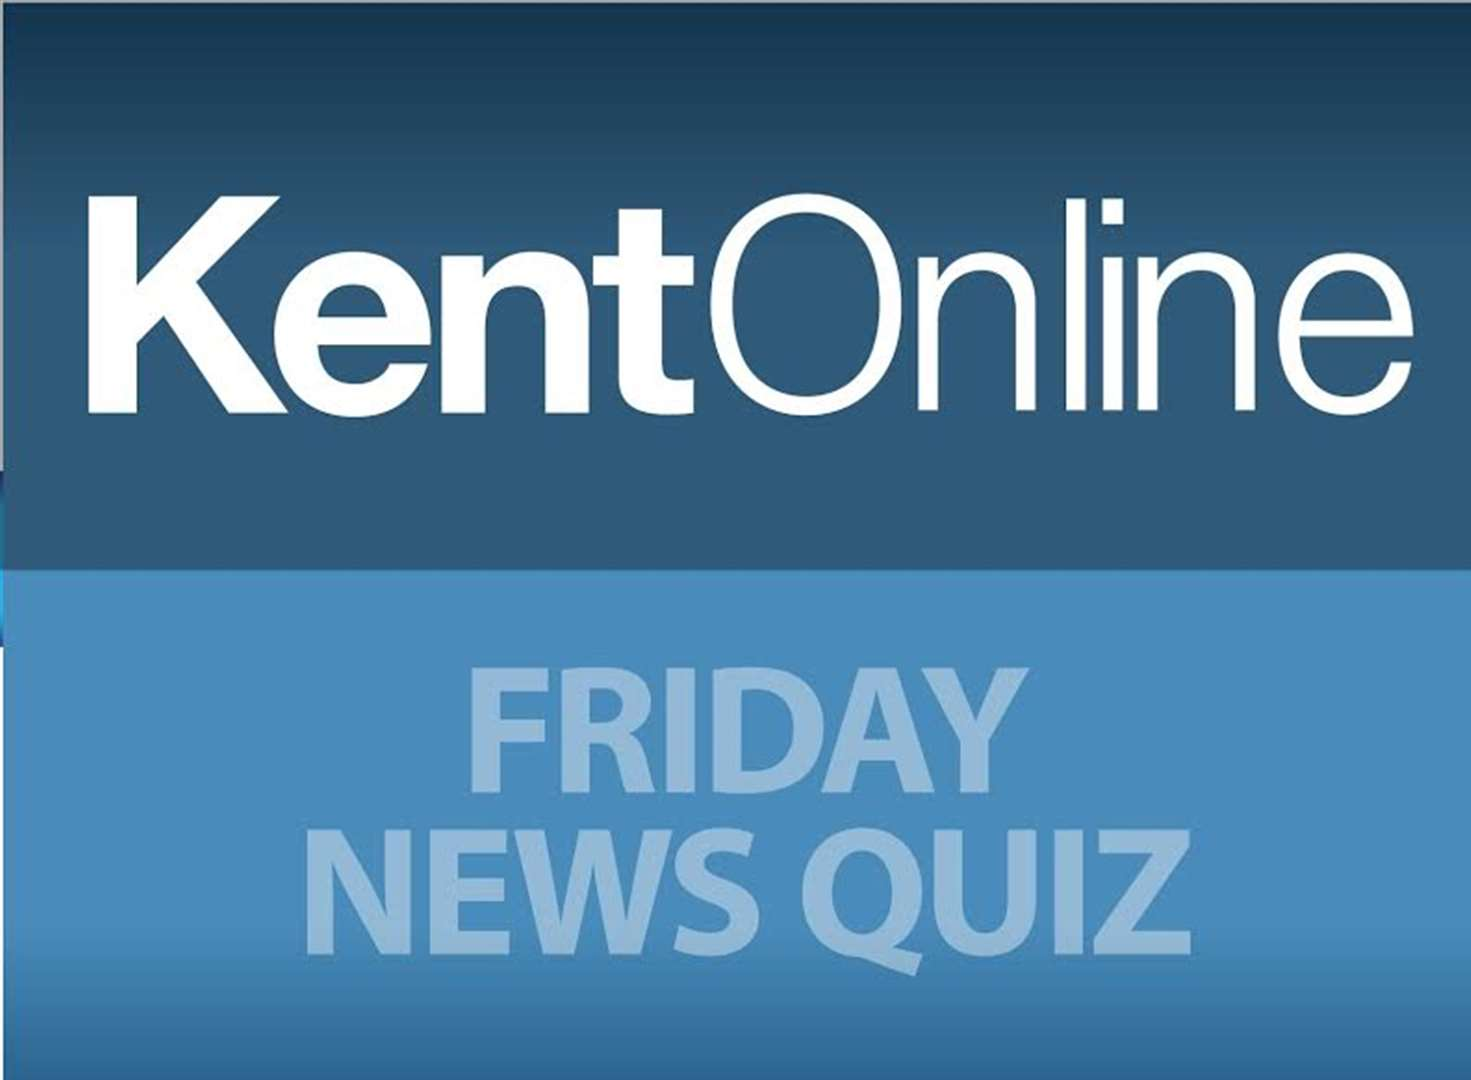 The Friday News Quiz